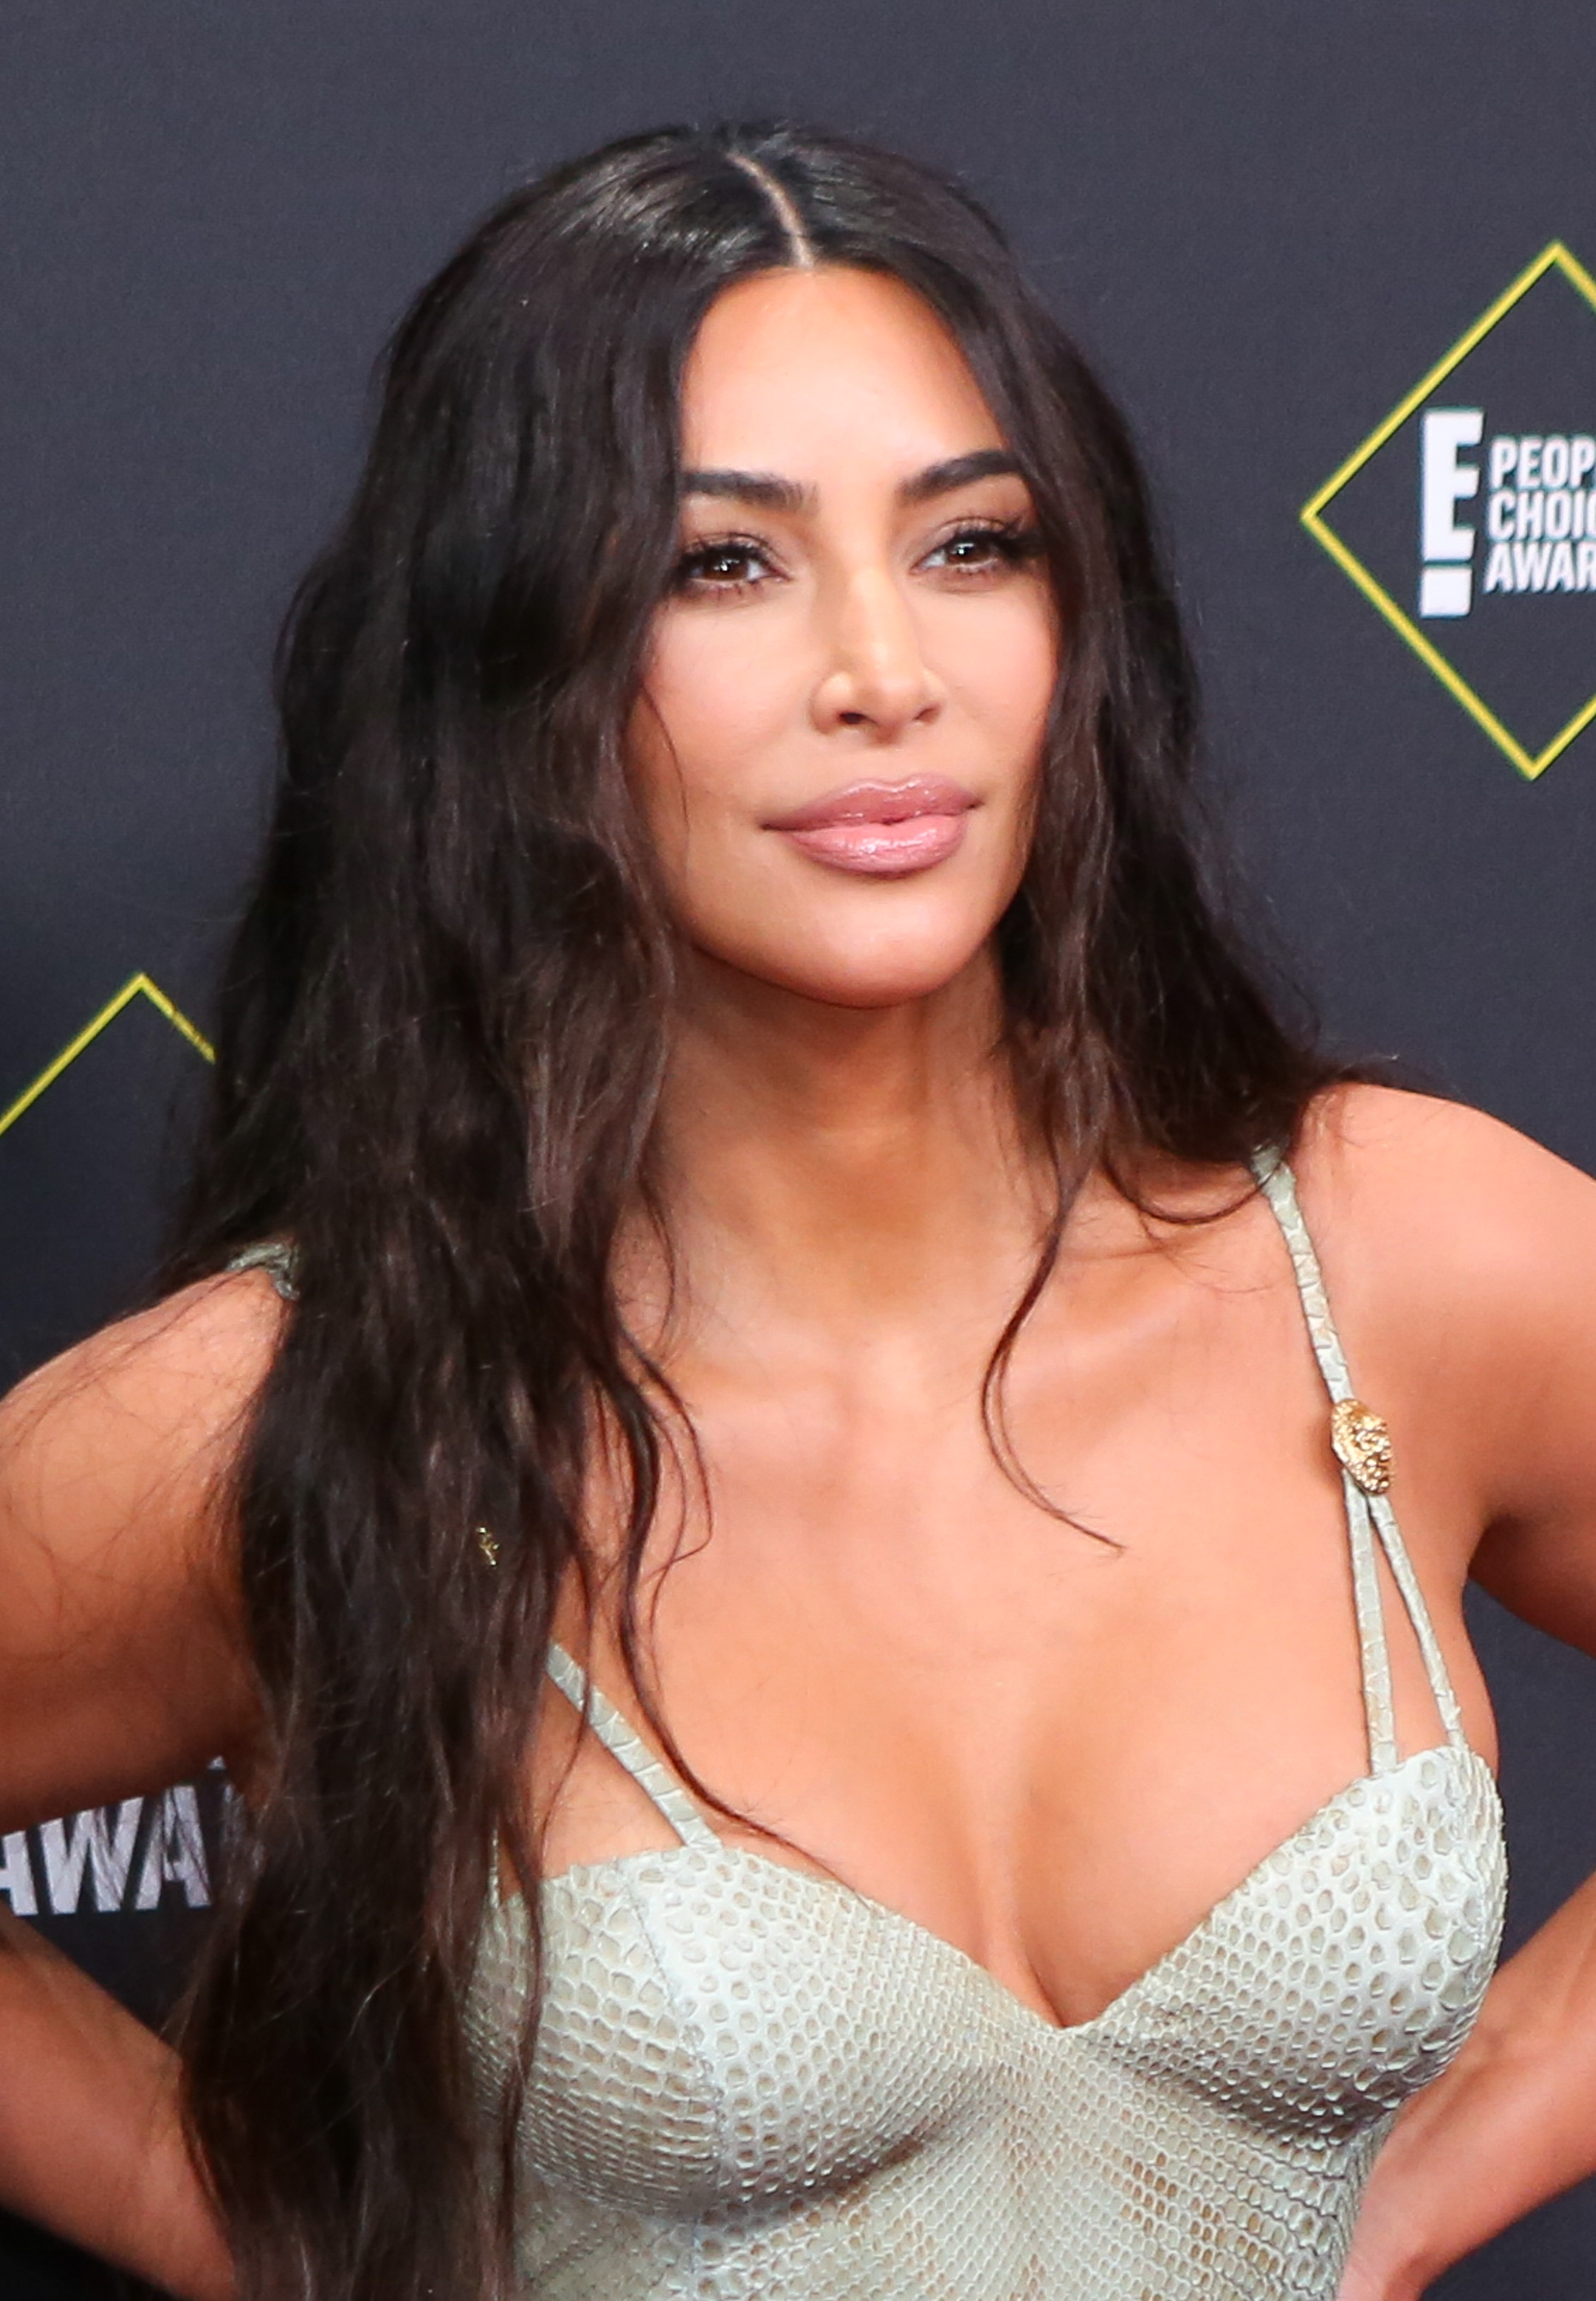 peoples-choice-awards-2019-red-carpet